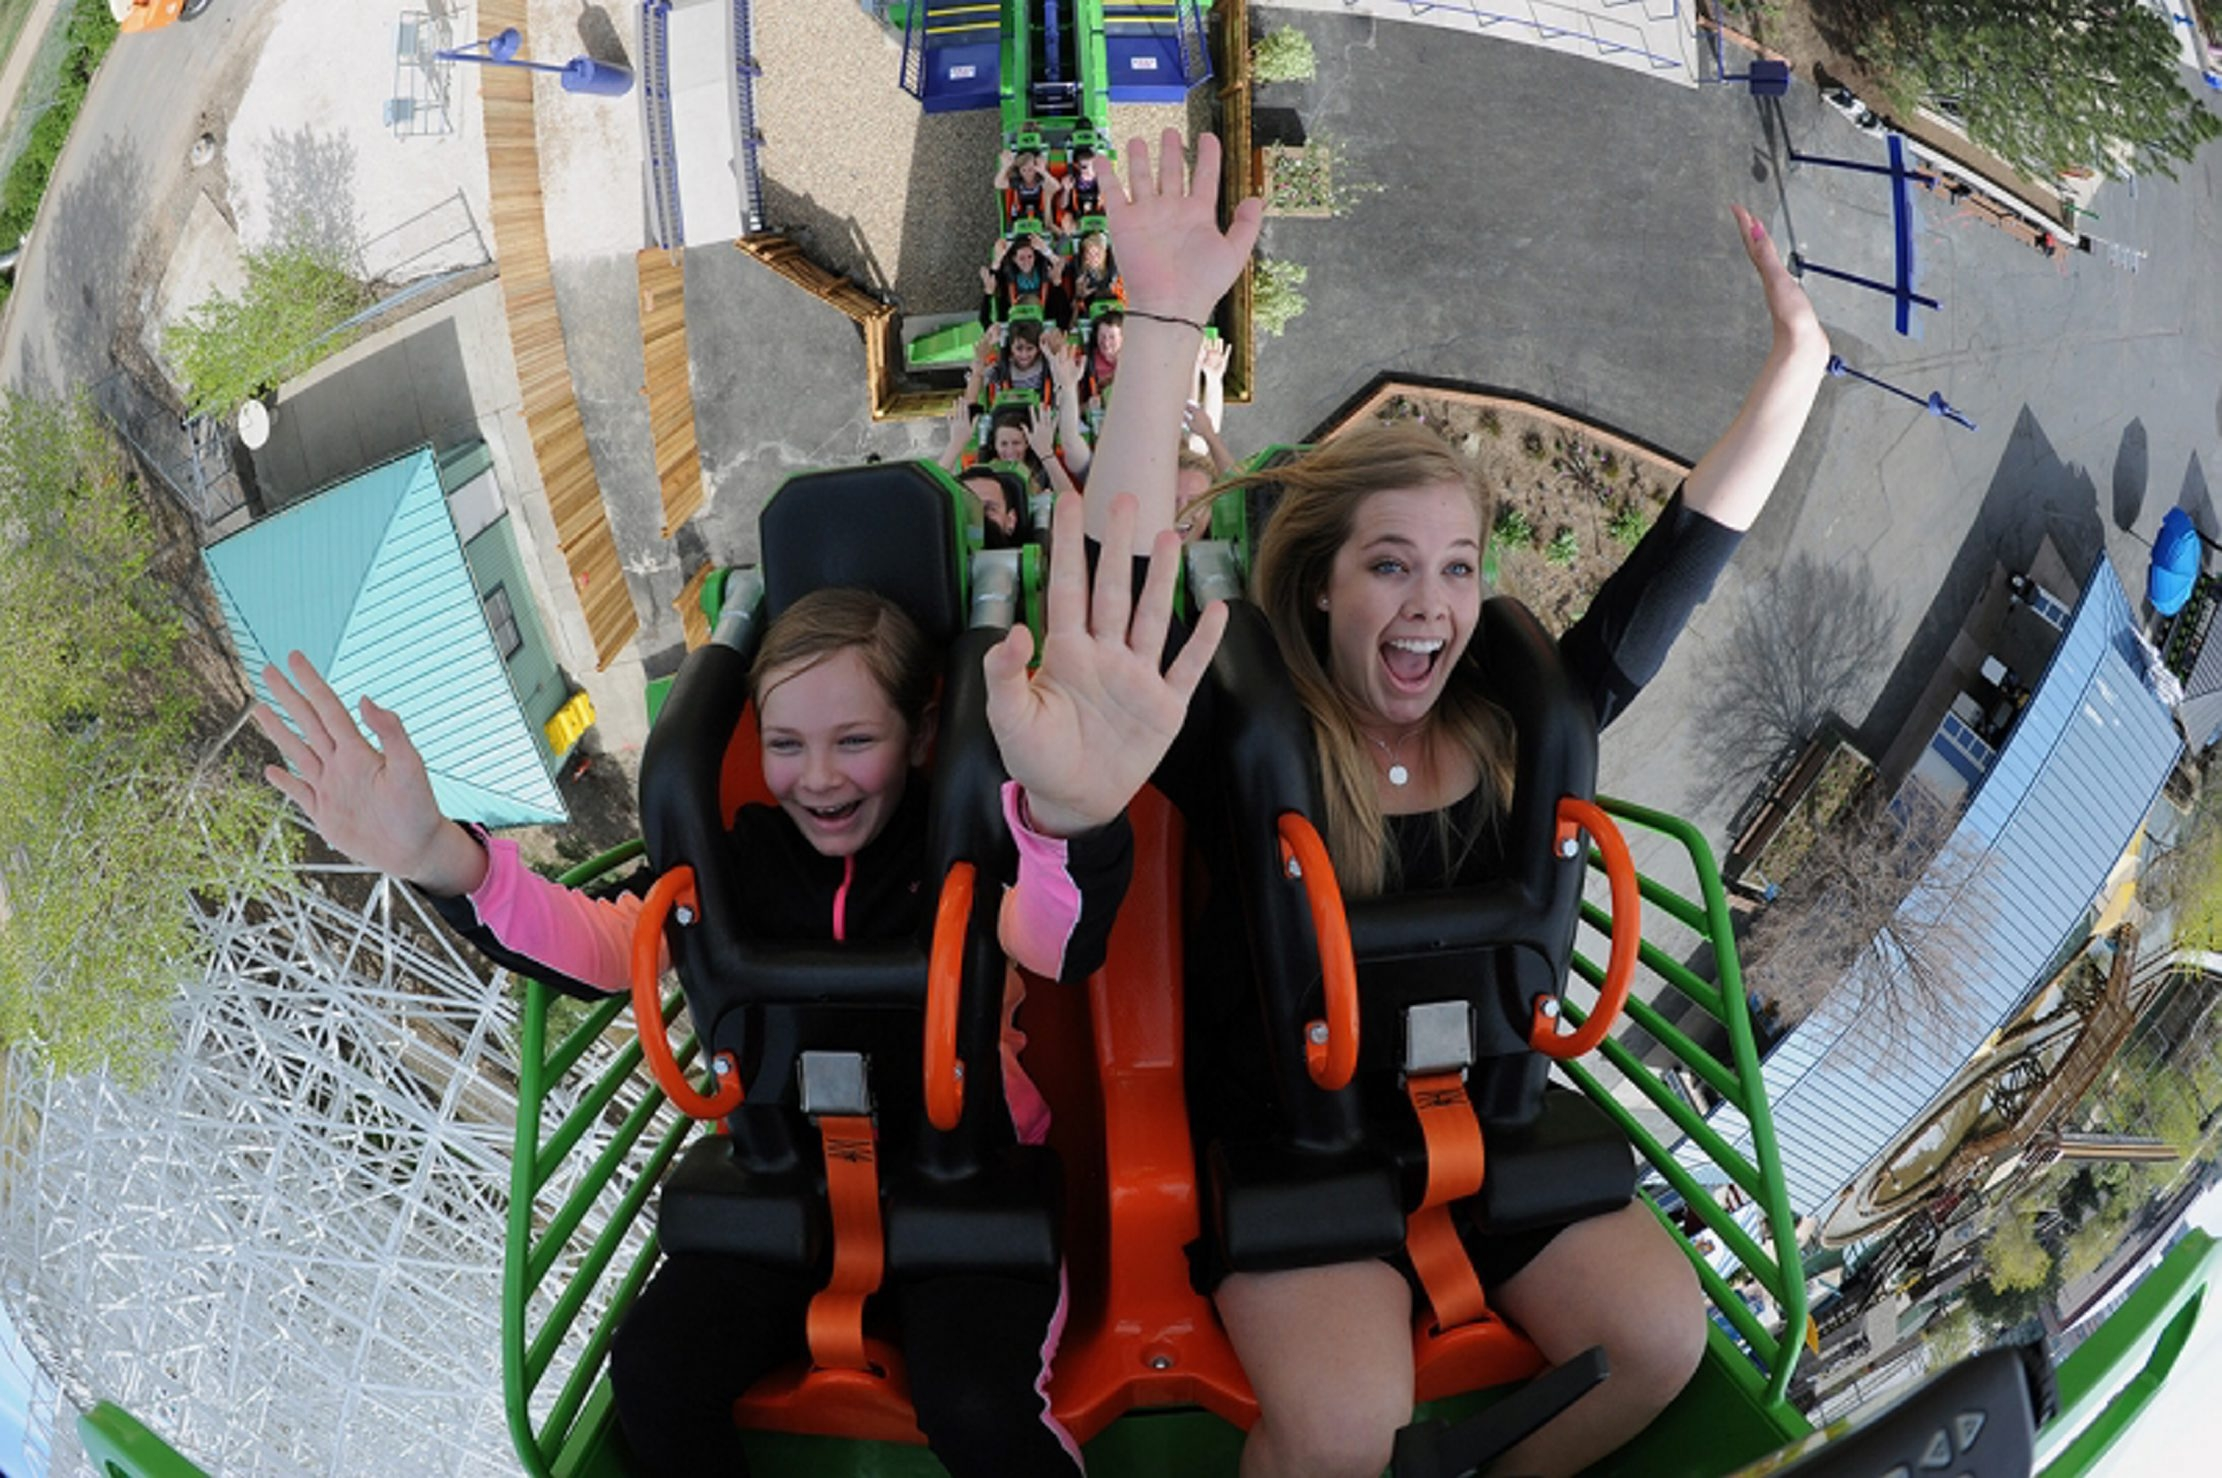 Rolling Thunder, a seven-story high-speed coaster that travels on a vertical, circular steel loop, will start being built this month in anticipation of Darien Lake's May 9 opening.